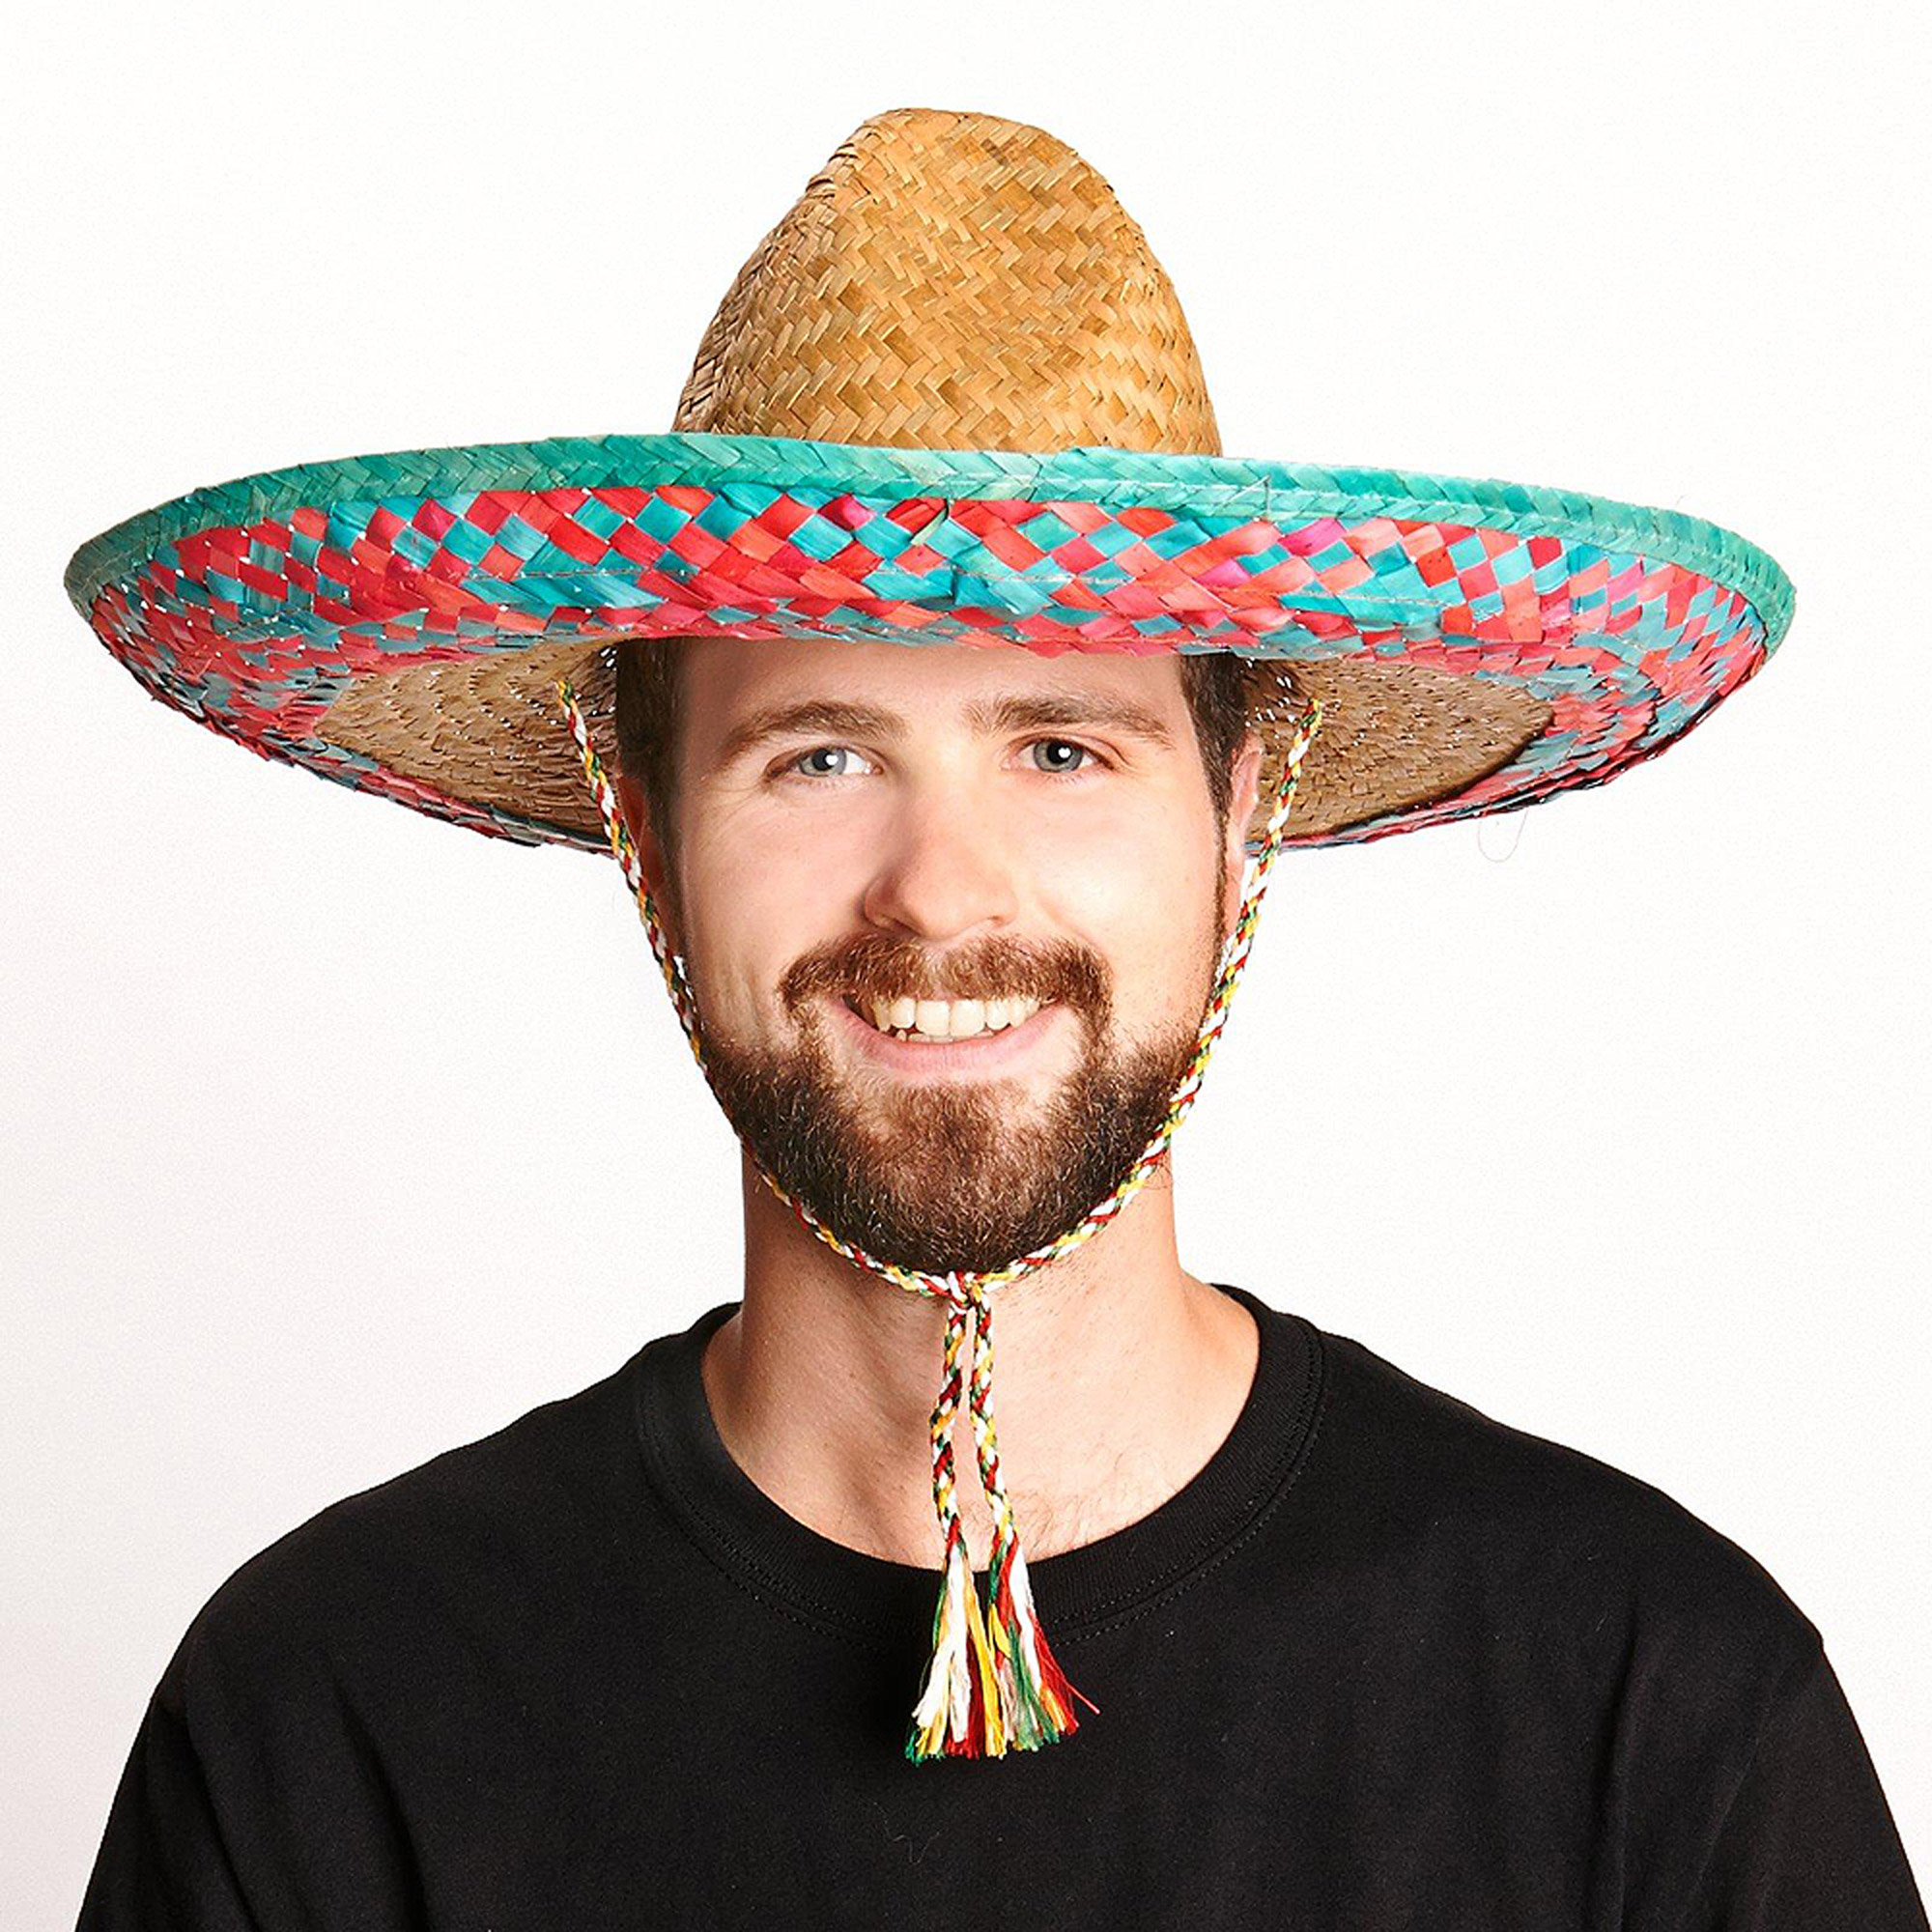 Adult Sombrero Adult Halloween Costume Accessory